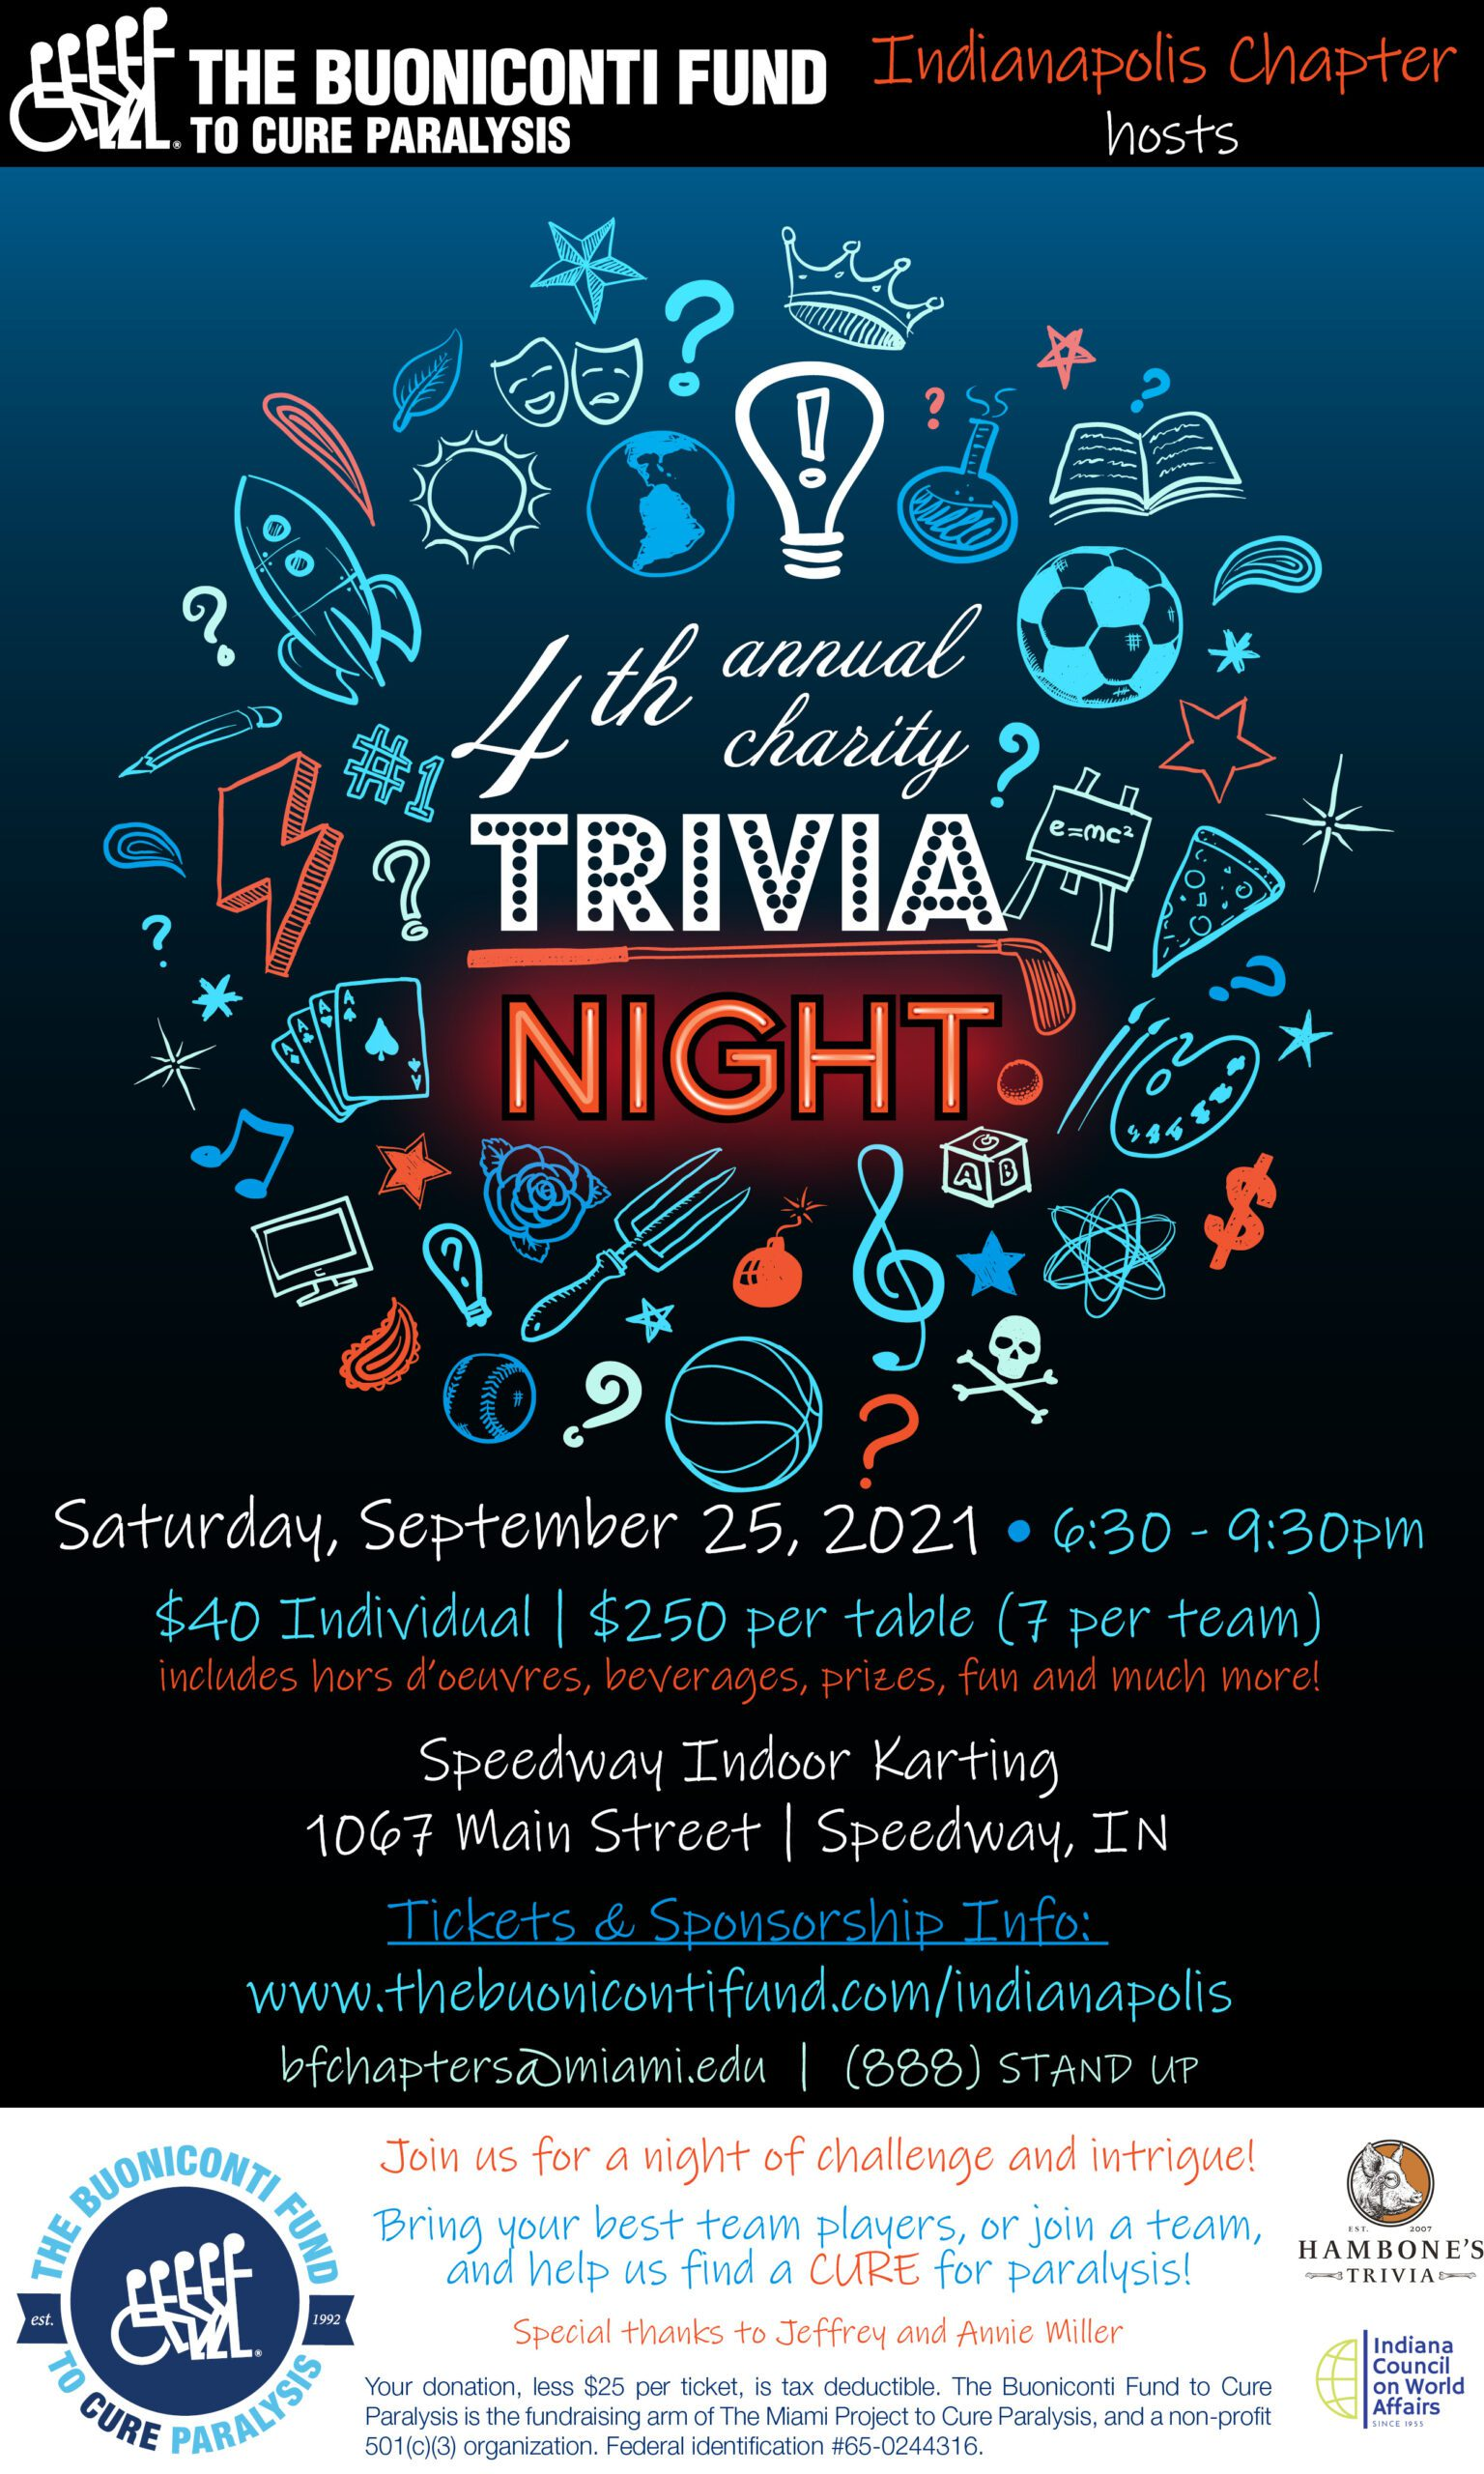 4th Annual Indianapolis Chapter Charity Trivia Night